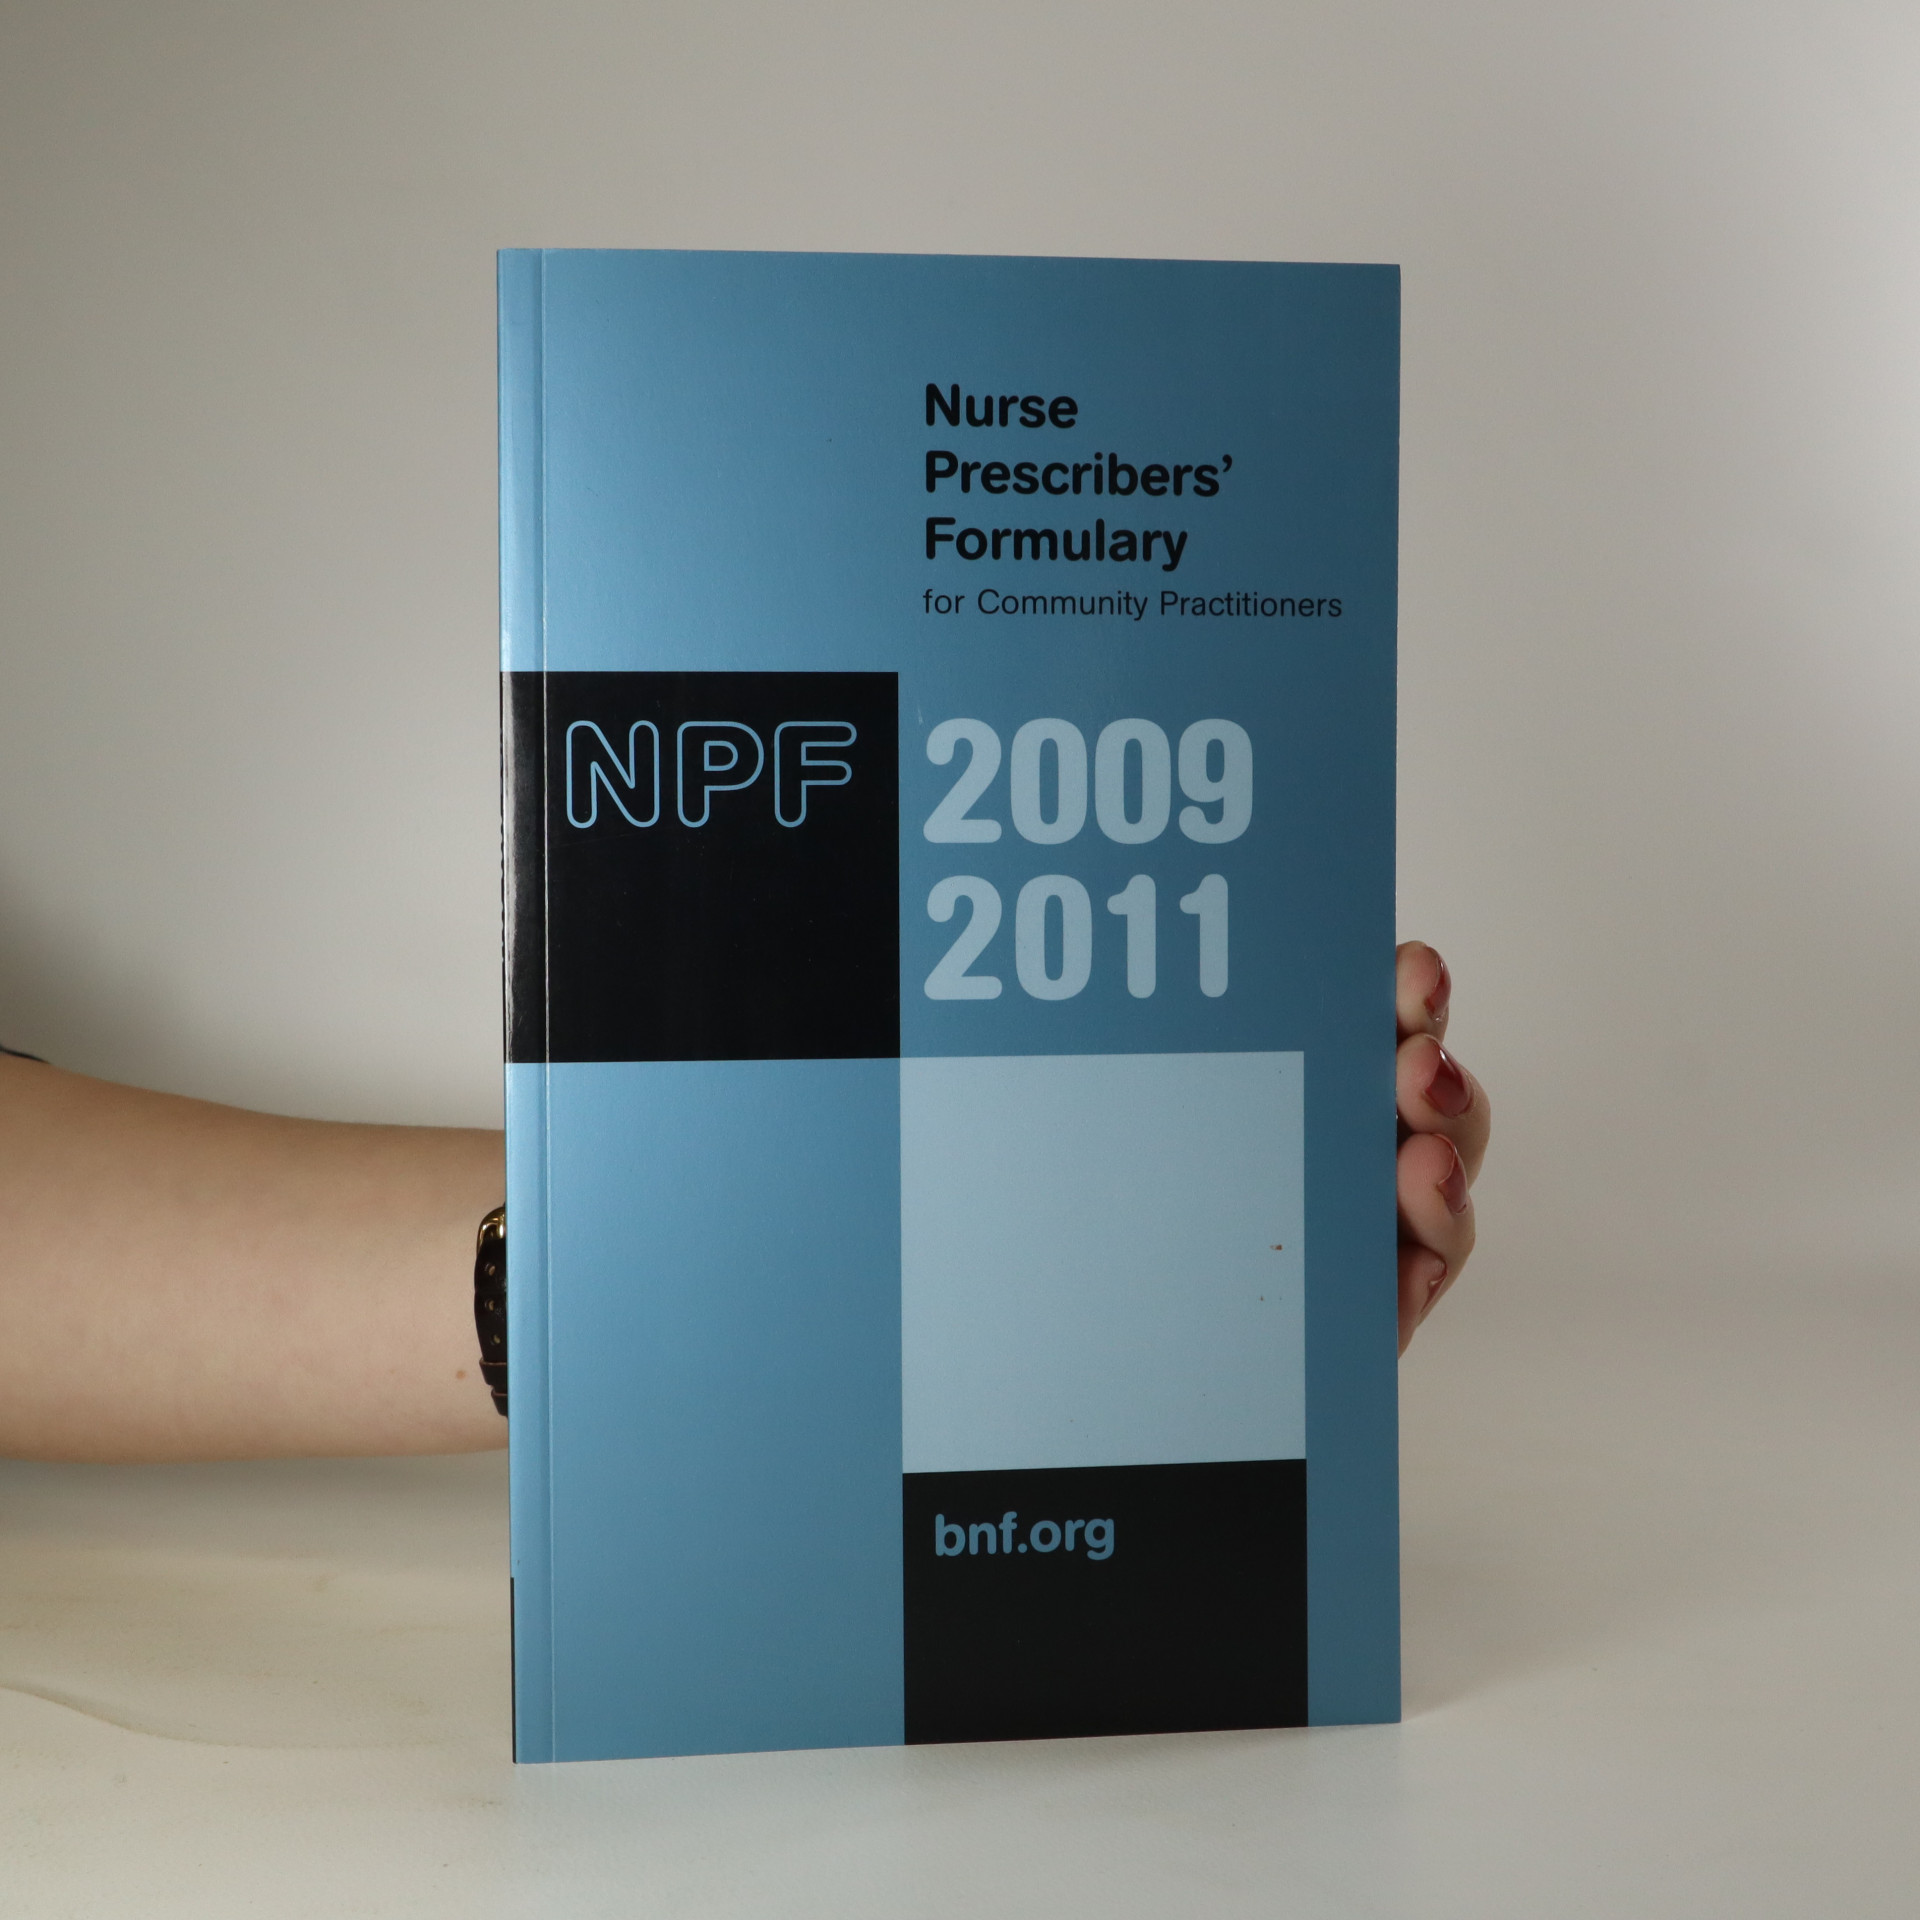 antikvární kniha Nurse Prescribers' Formulary for Community Practitioners 2009-2011, 2009